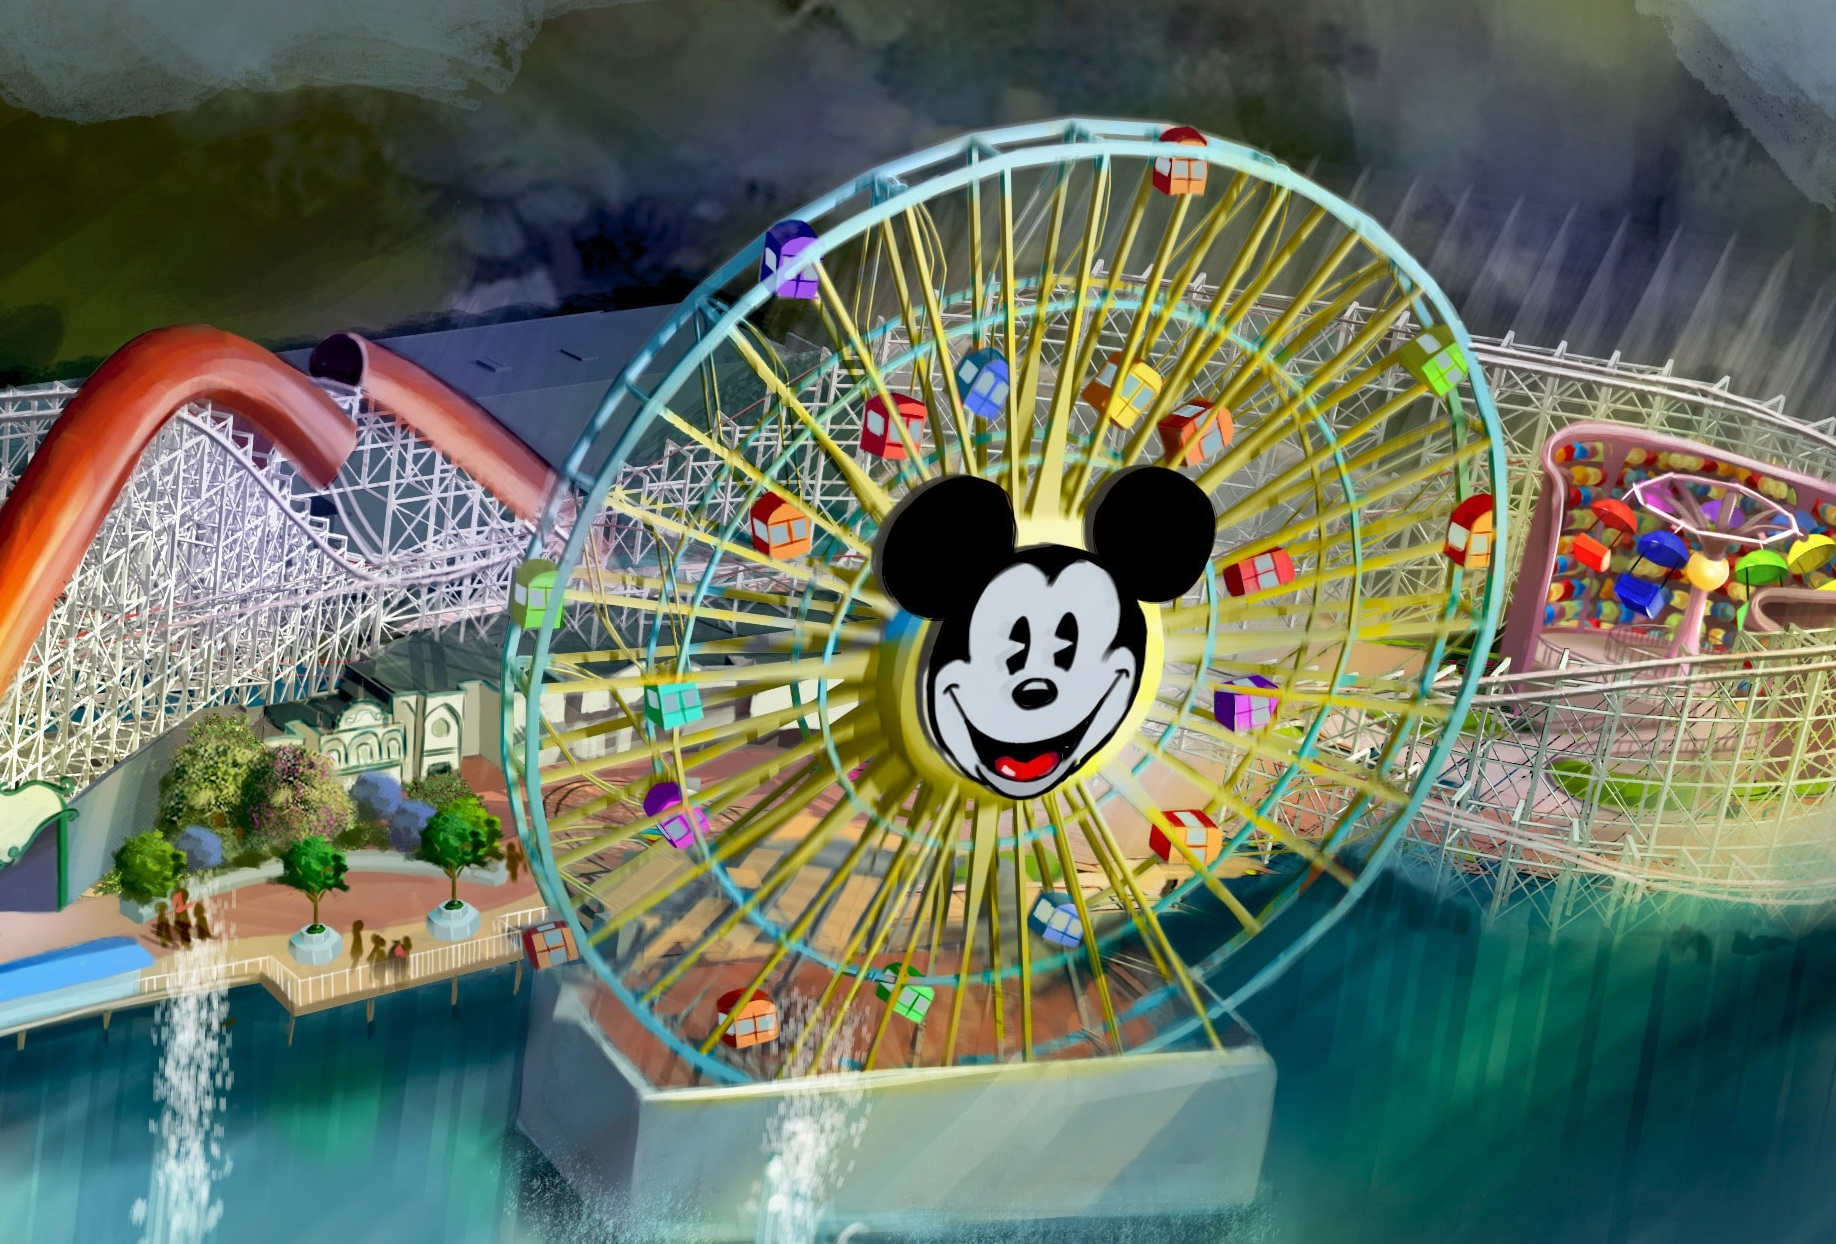 """Slide 13 of 15: PIXAR PIER (ANAHEIM, Calif.) –Summer 2018 will bring a transformed land when Pixar Pier opens for guests to experience at Disney California Adventure park, featuring the new Incredicoaster inspired by Disney•Pixar's """"The Incredibles."""" This artist concept illustrates the four new neighborhoods that will represent beloved Pixar stories and the newly themed attractions that will be found throughout the permanent land of Pixar Pier. (Disney•Pixar)"""